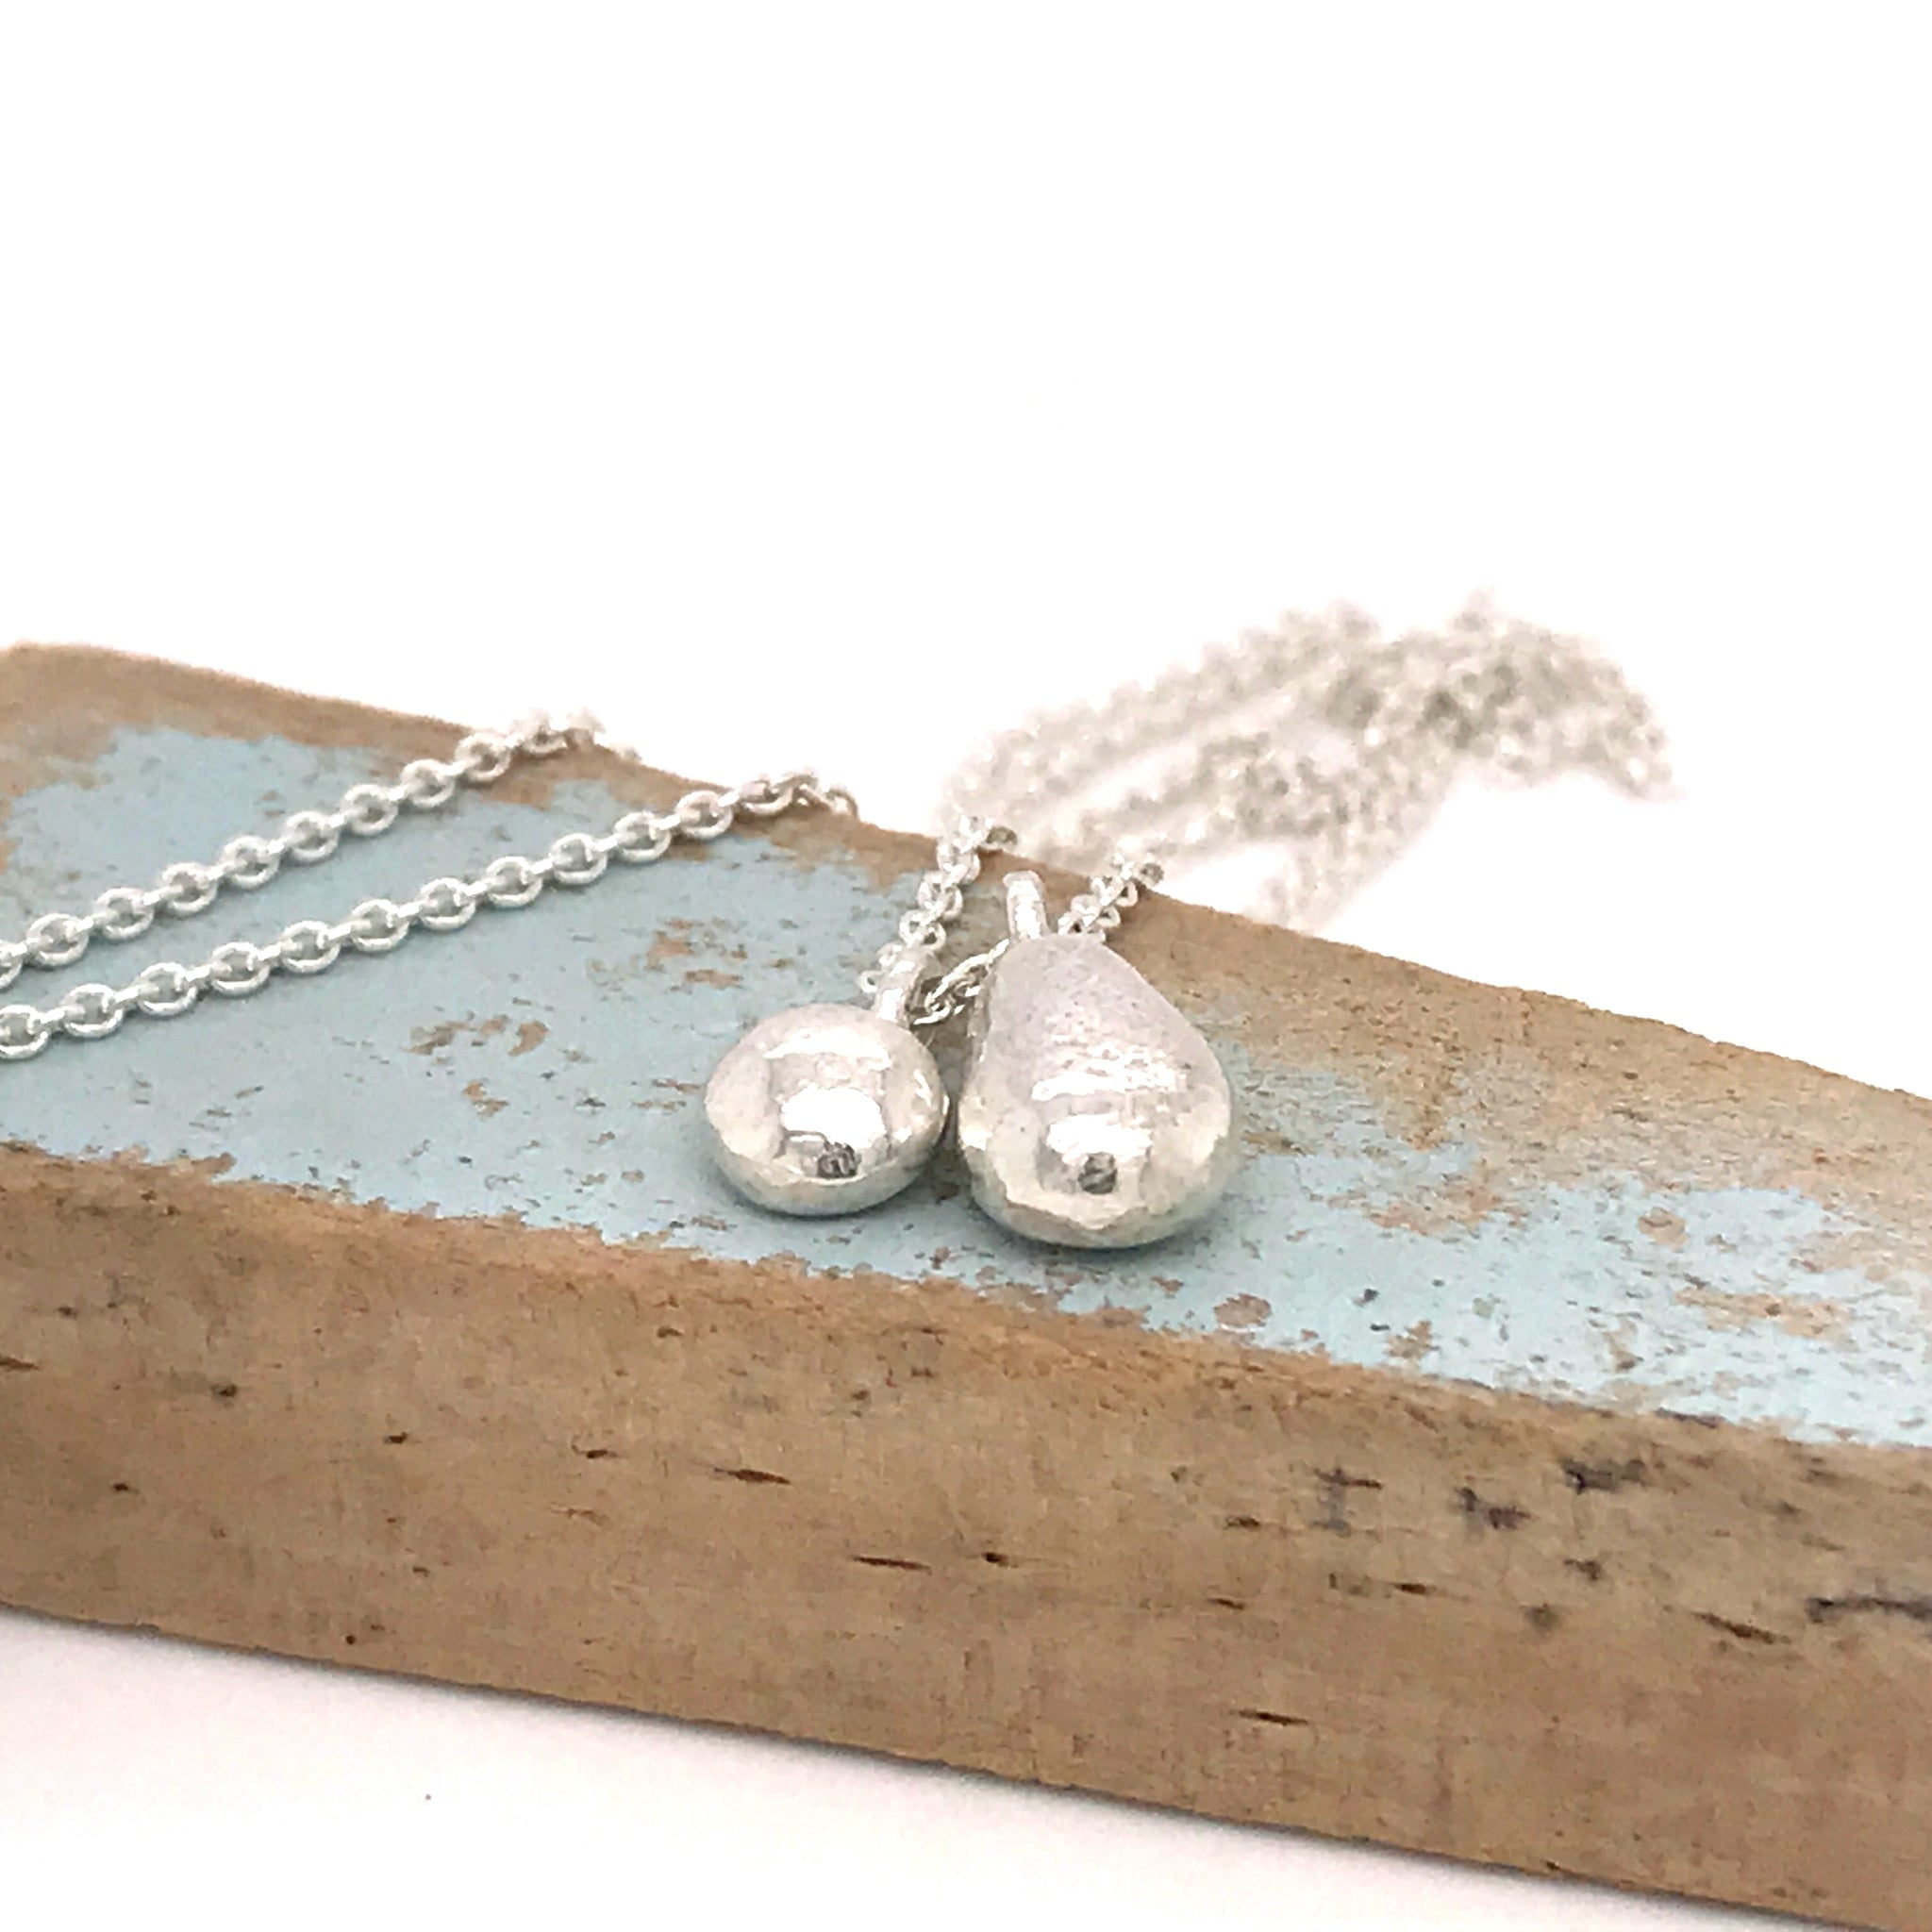 sterling silver necklace with two solid silver seaglass charms kriket broadhurst jewellery